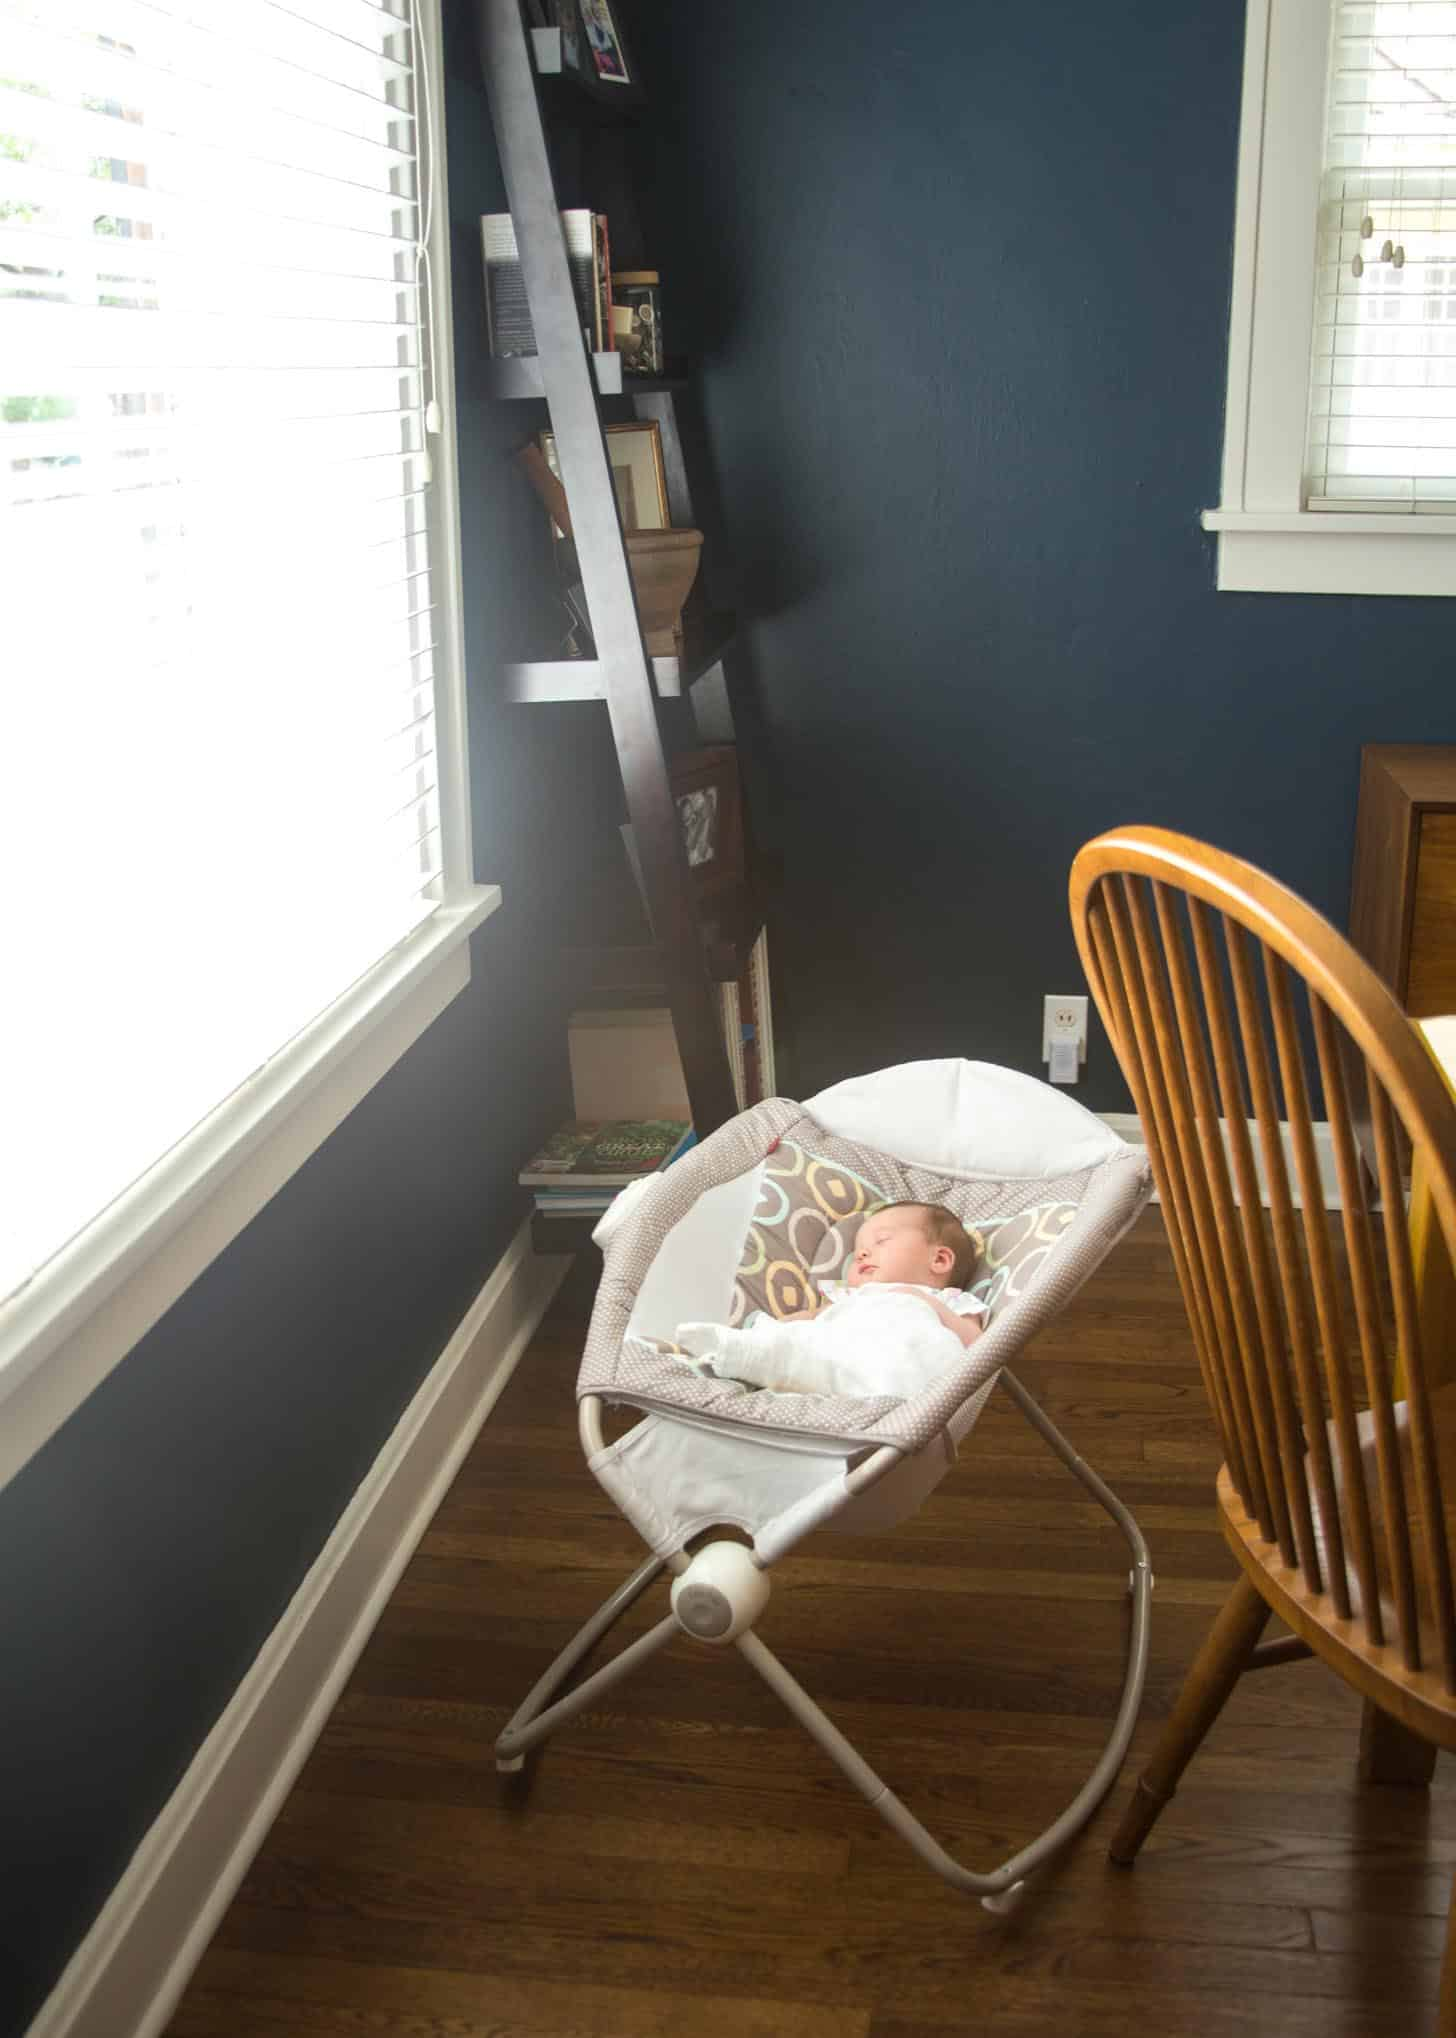 a baby sleeping in a swing